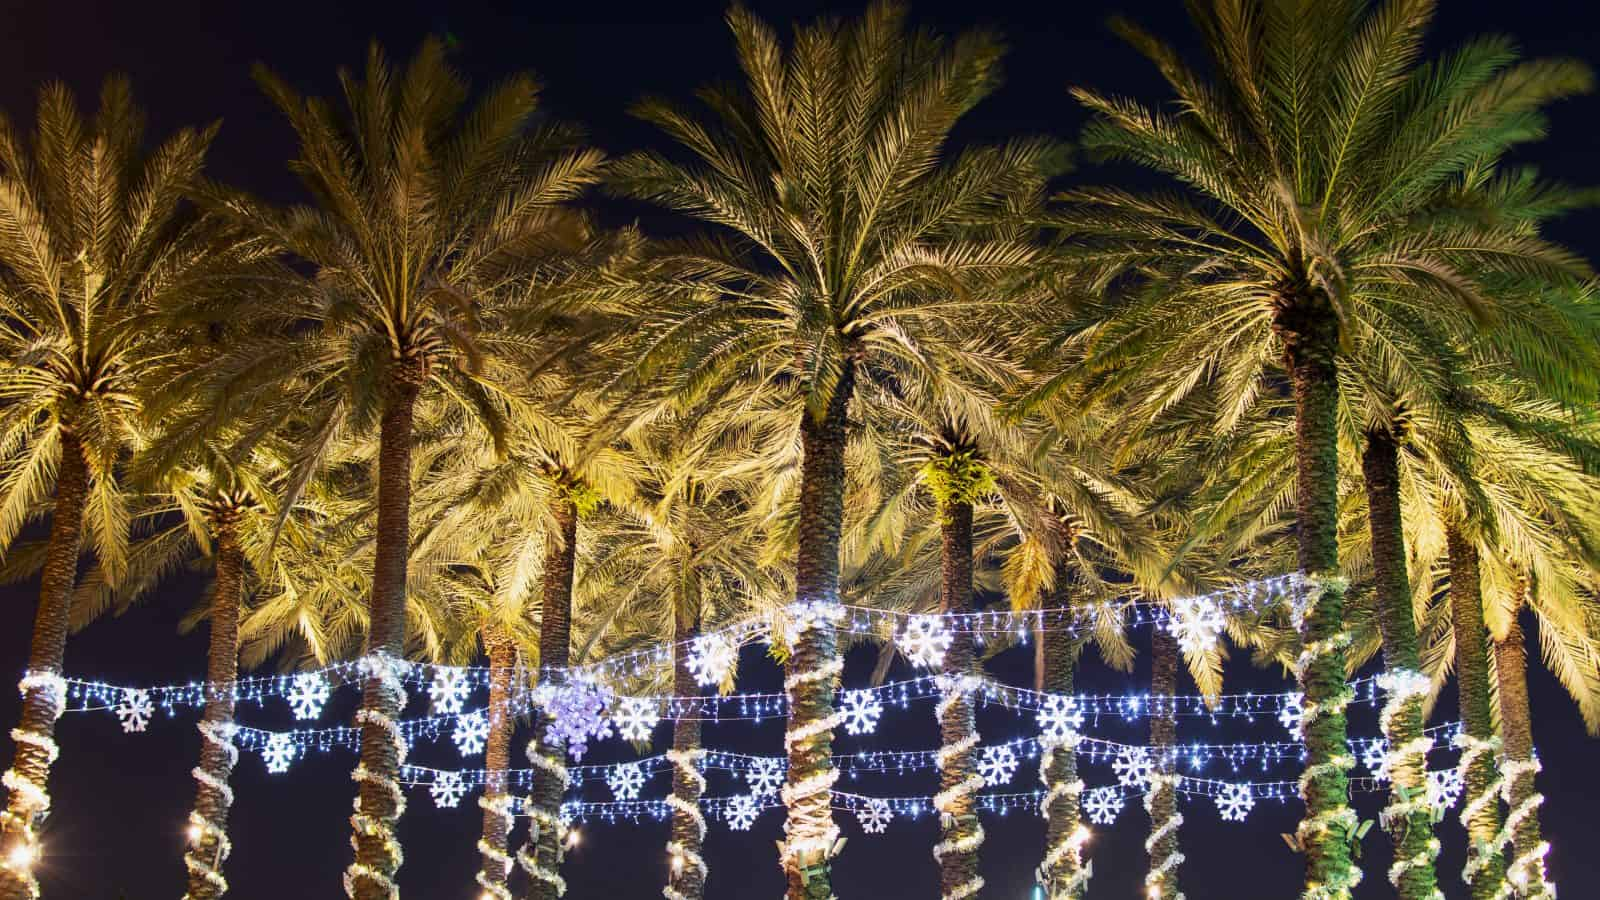 Palm trees are covered in lights during winter in Florida.